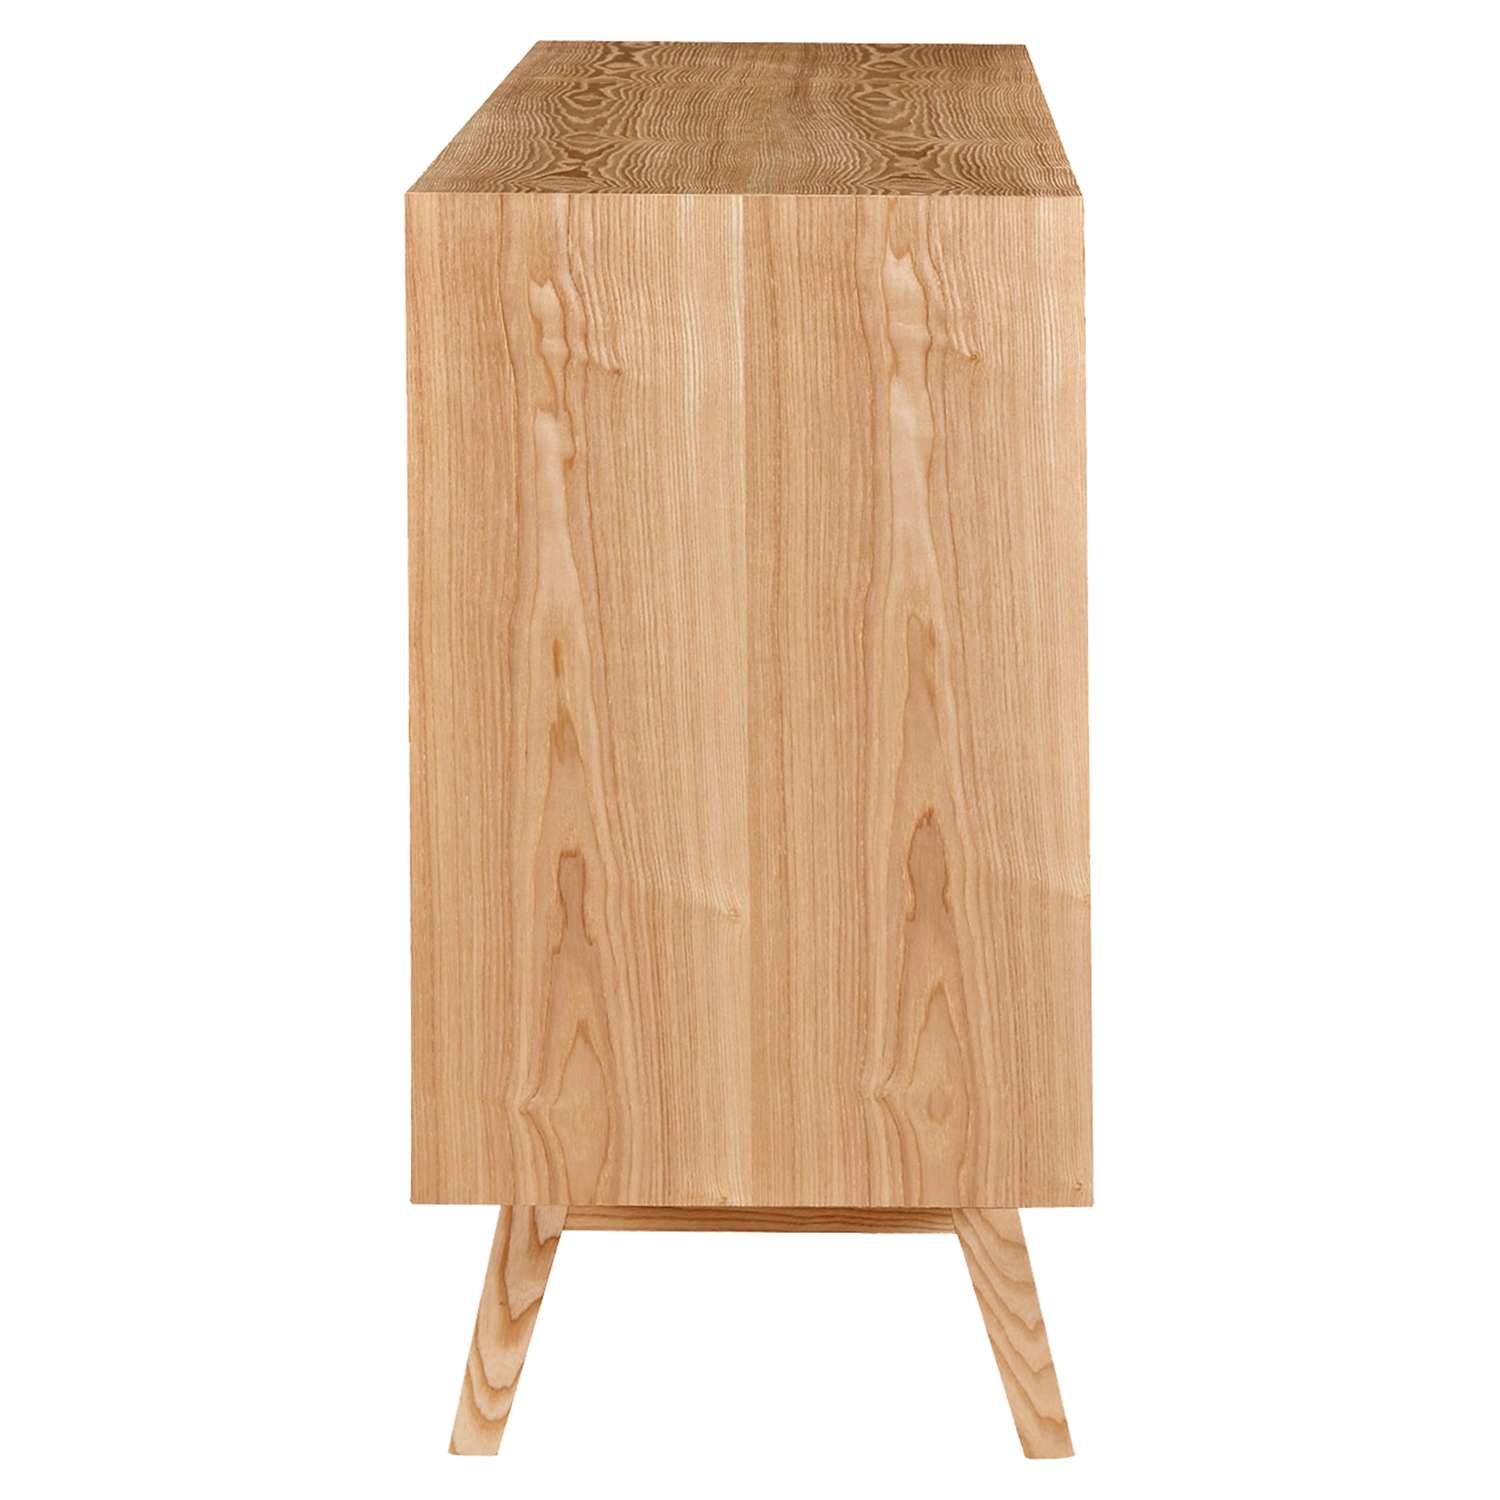 Grane Sideboard - Natural - NYEK-224414